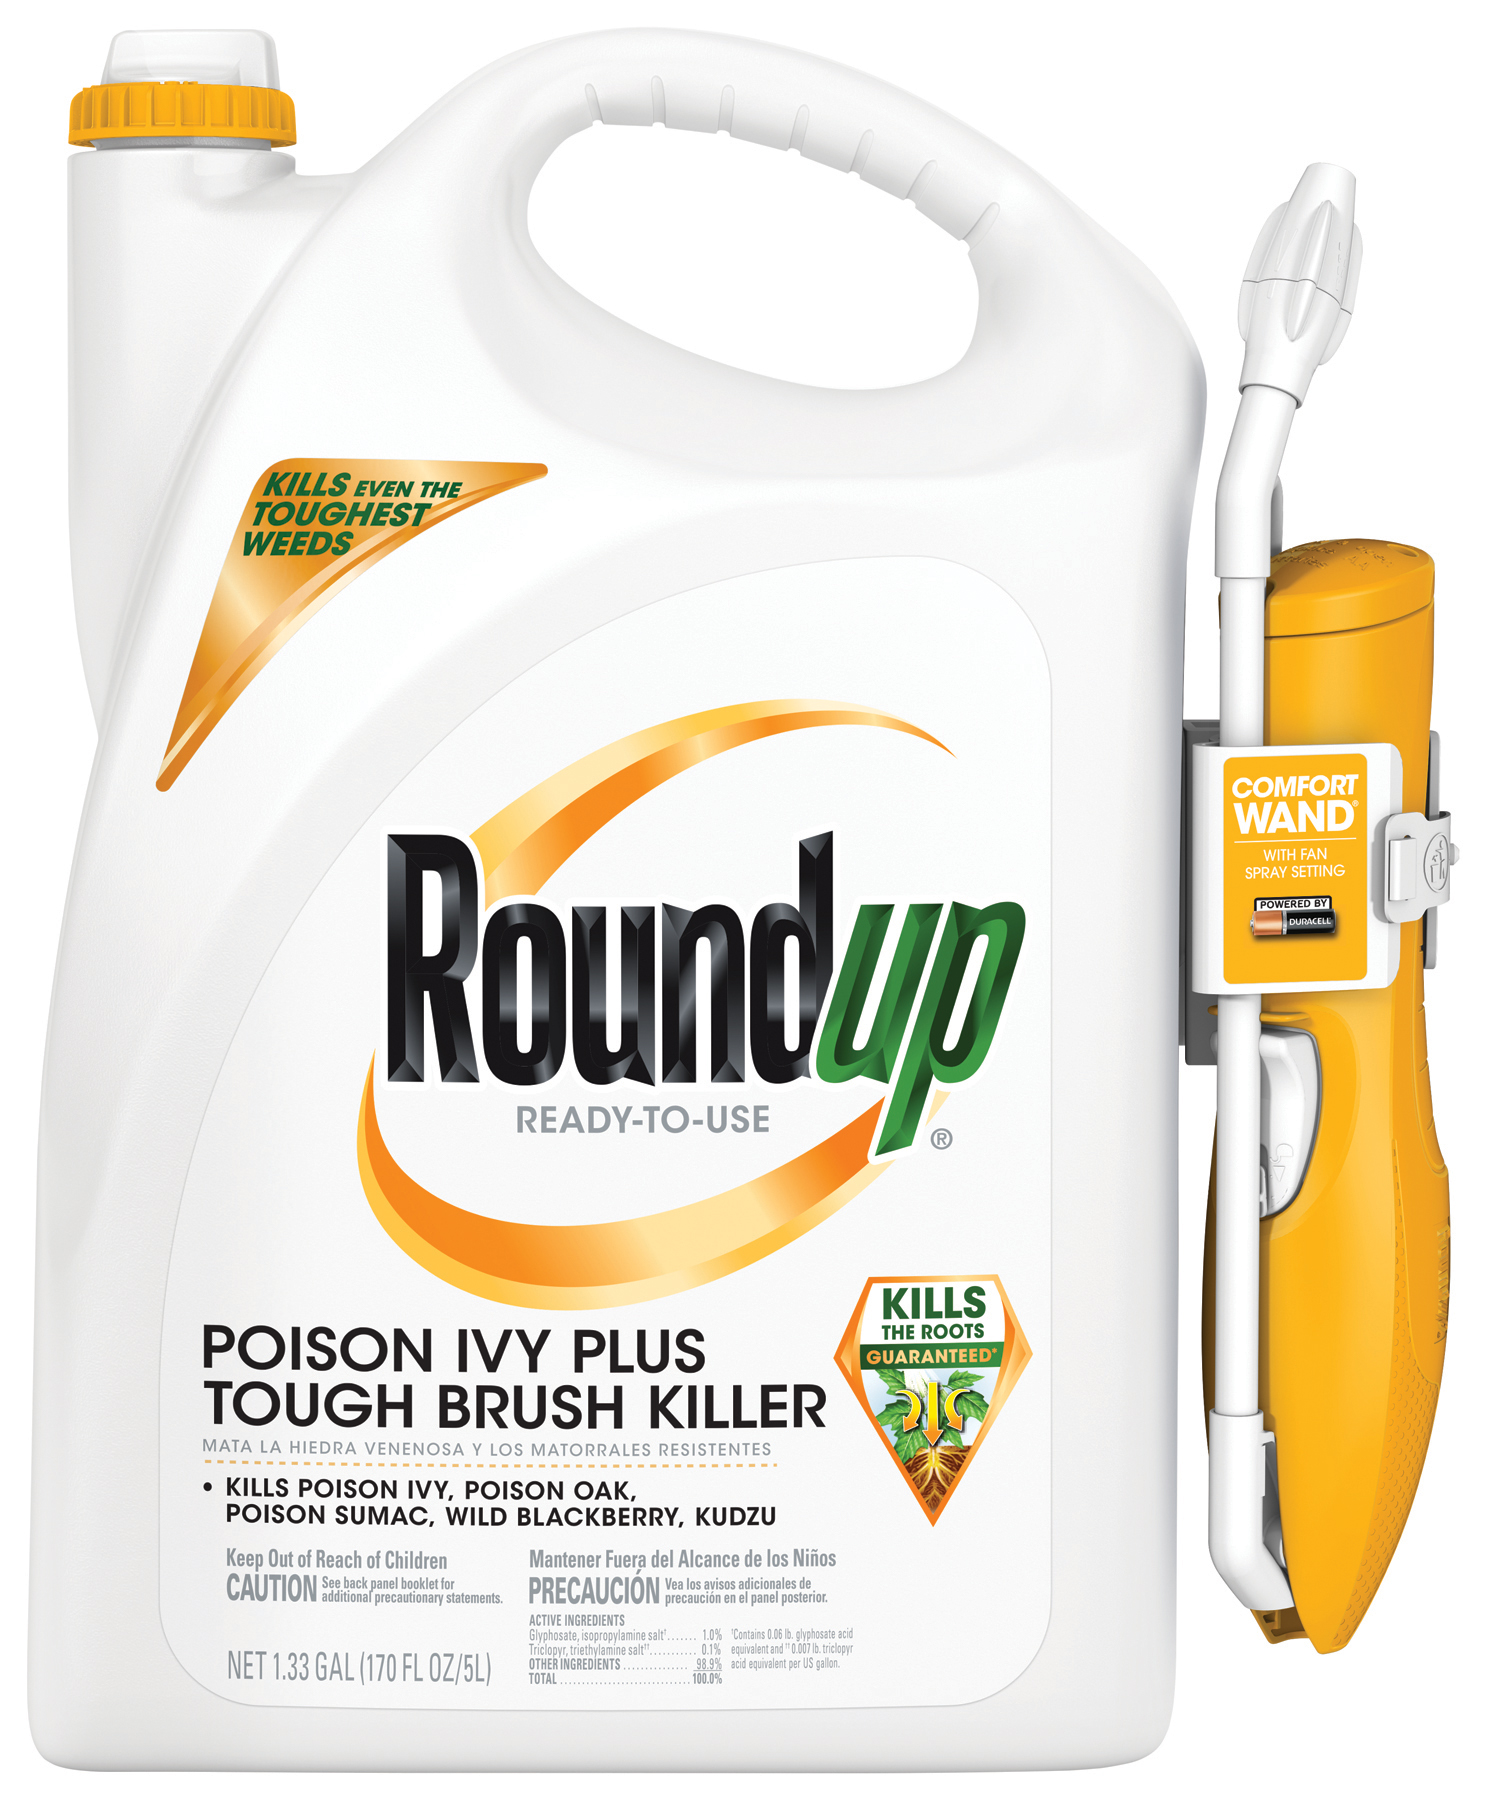 Poison Ivy Control Roundup Poison Ivy Plus Tough Brush Killer